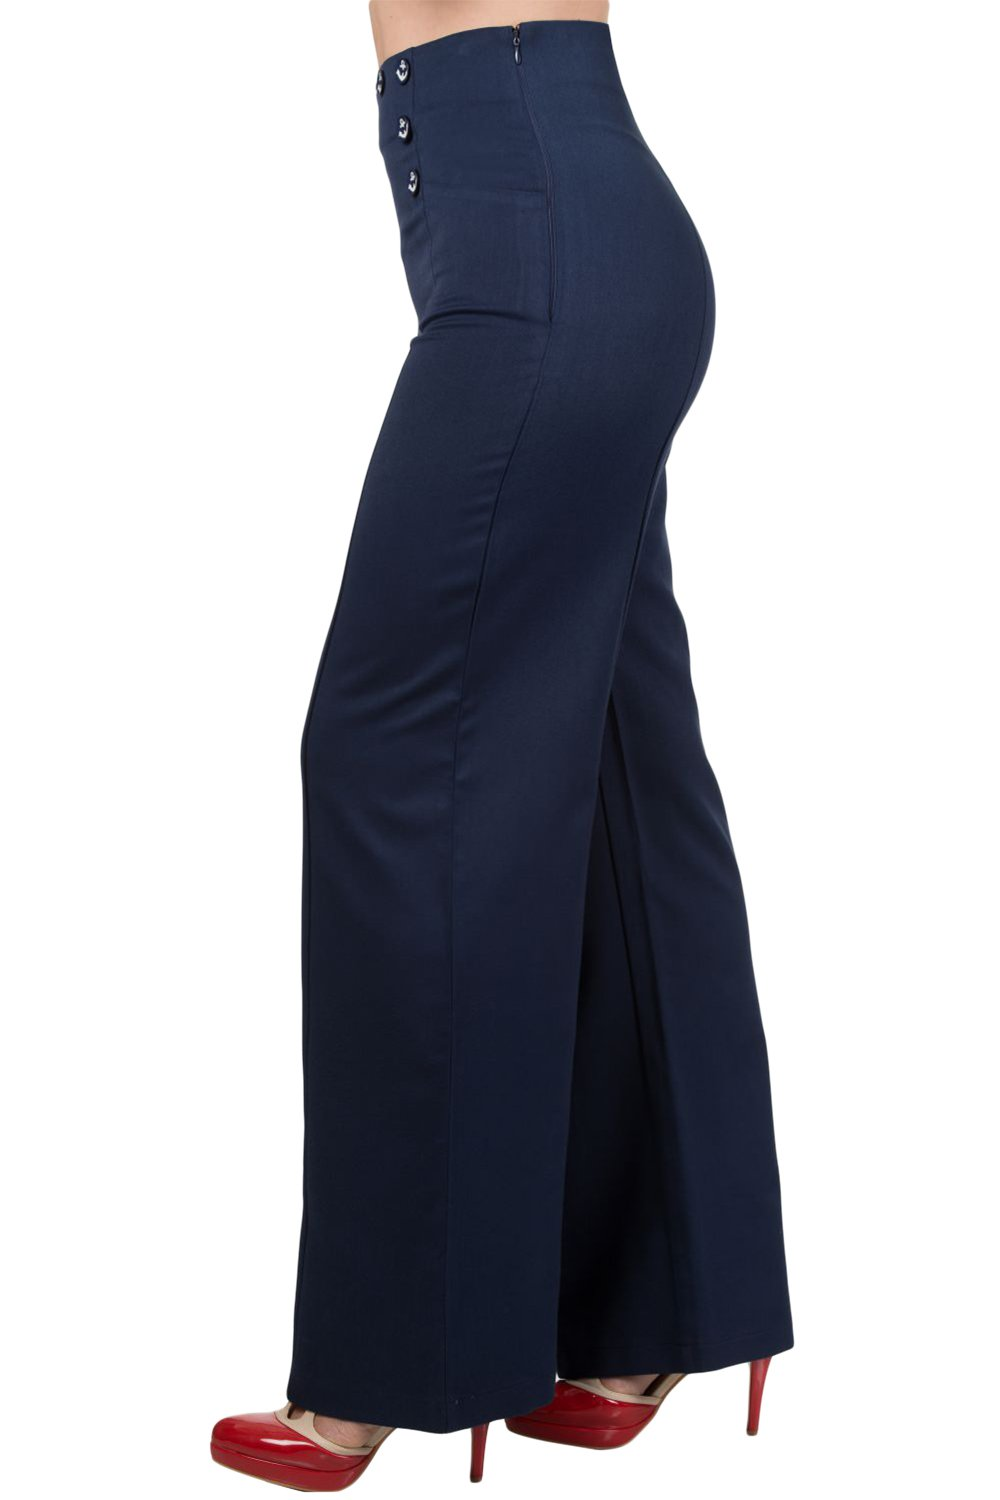 Banned 50's Vintage Sailor High Waist Double Buttoned Wide Leg bell flare Pants (S, Navy) by Banned Apparel (Image #3)